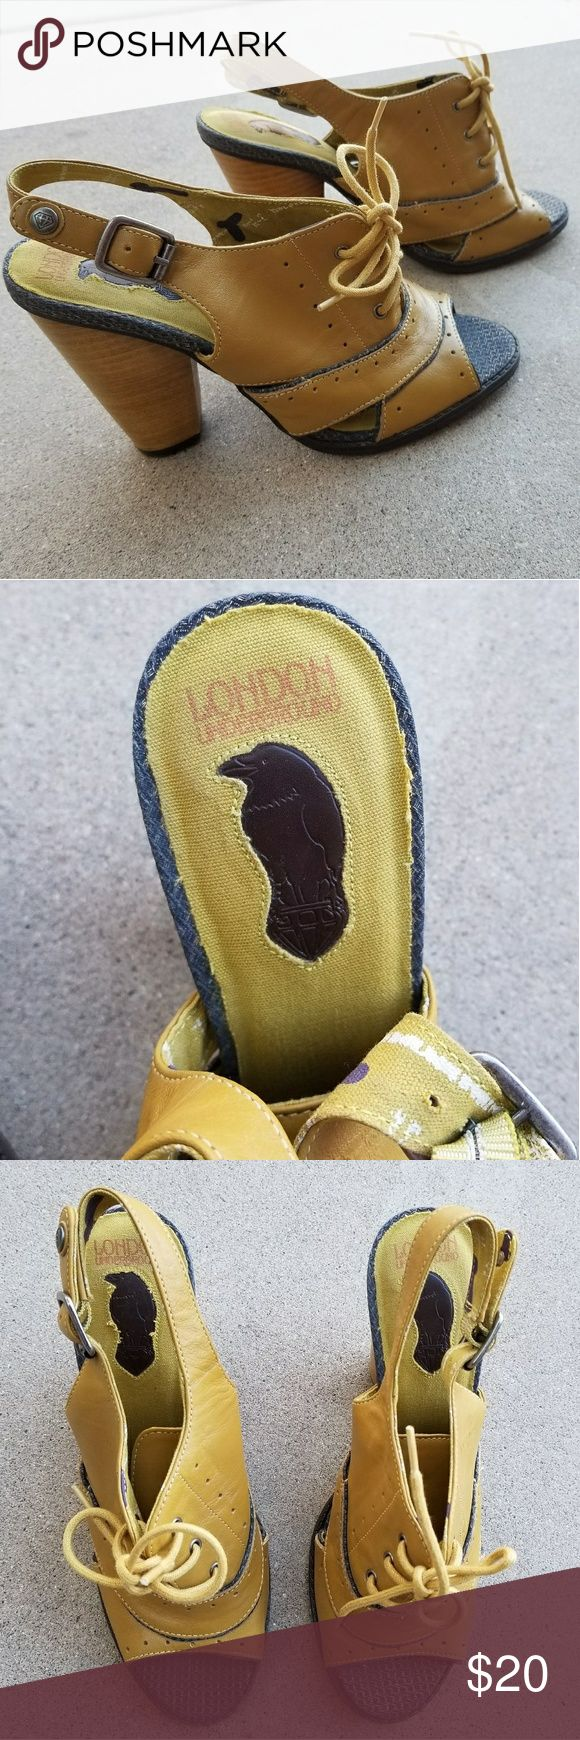 London Underground Chunky Heels. Size 8 These shoes are so cute and in excellent condition! They couldn't have been worn more than a couple times if that. Mustard yellow and brown/black with cute lace up top. If they were my size I would keep them! London Underground Shoes Heels